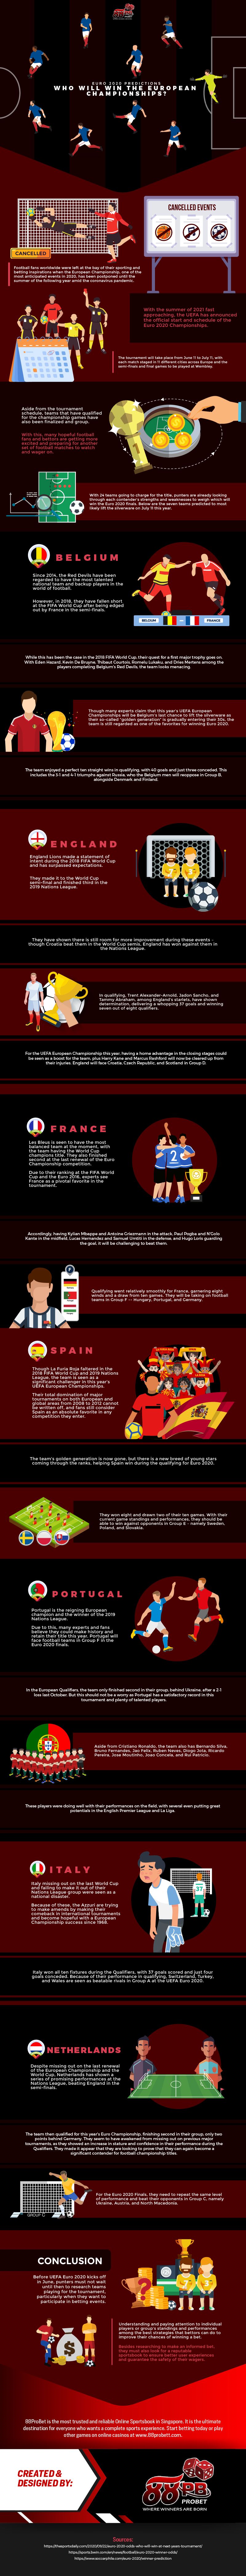 Euro-2020-Predictions-Who-will-win-the-European-Championships-Infographic